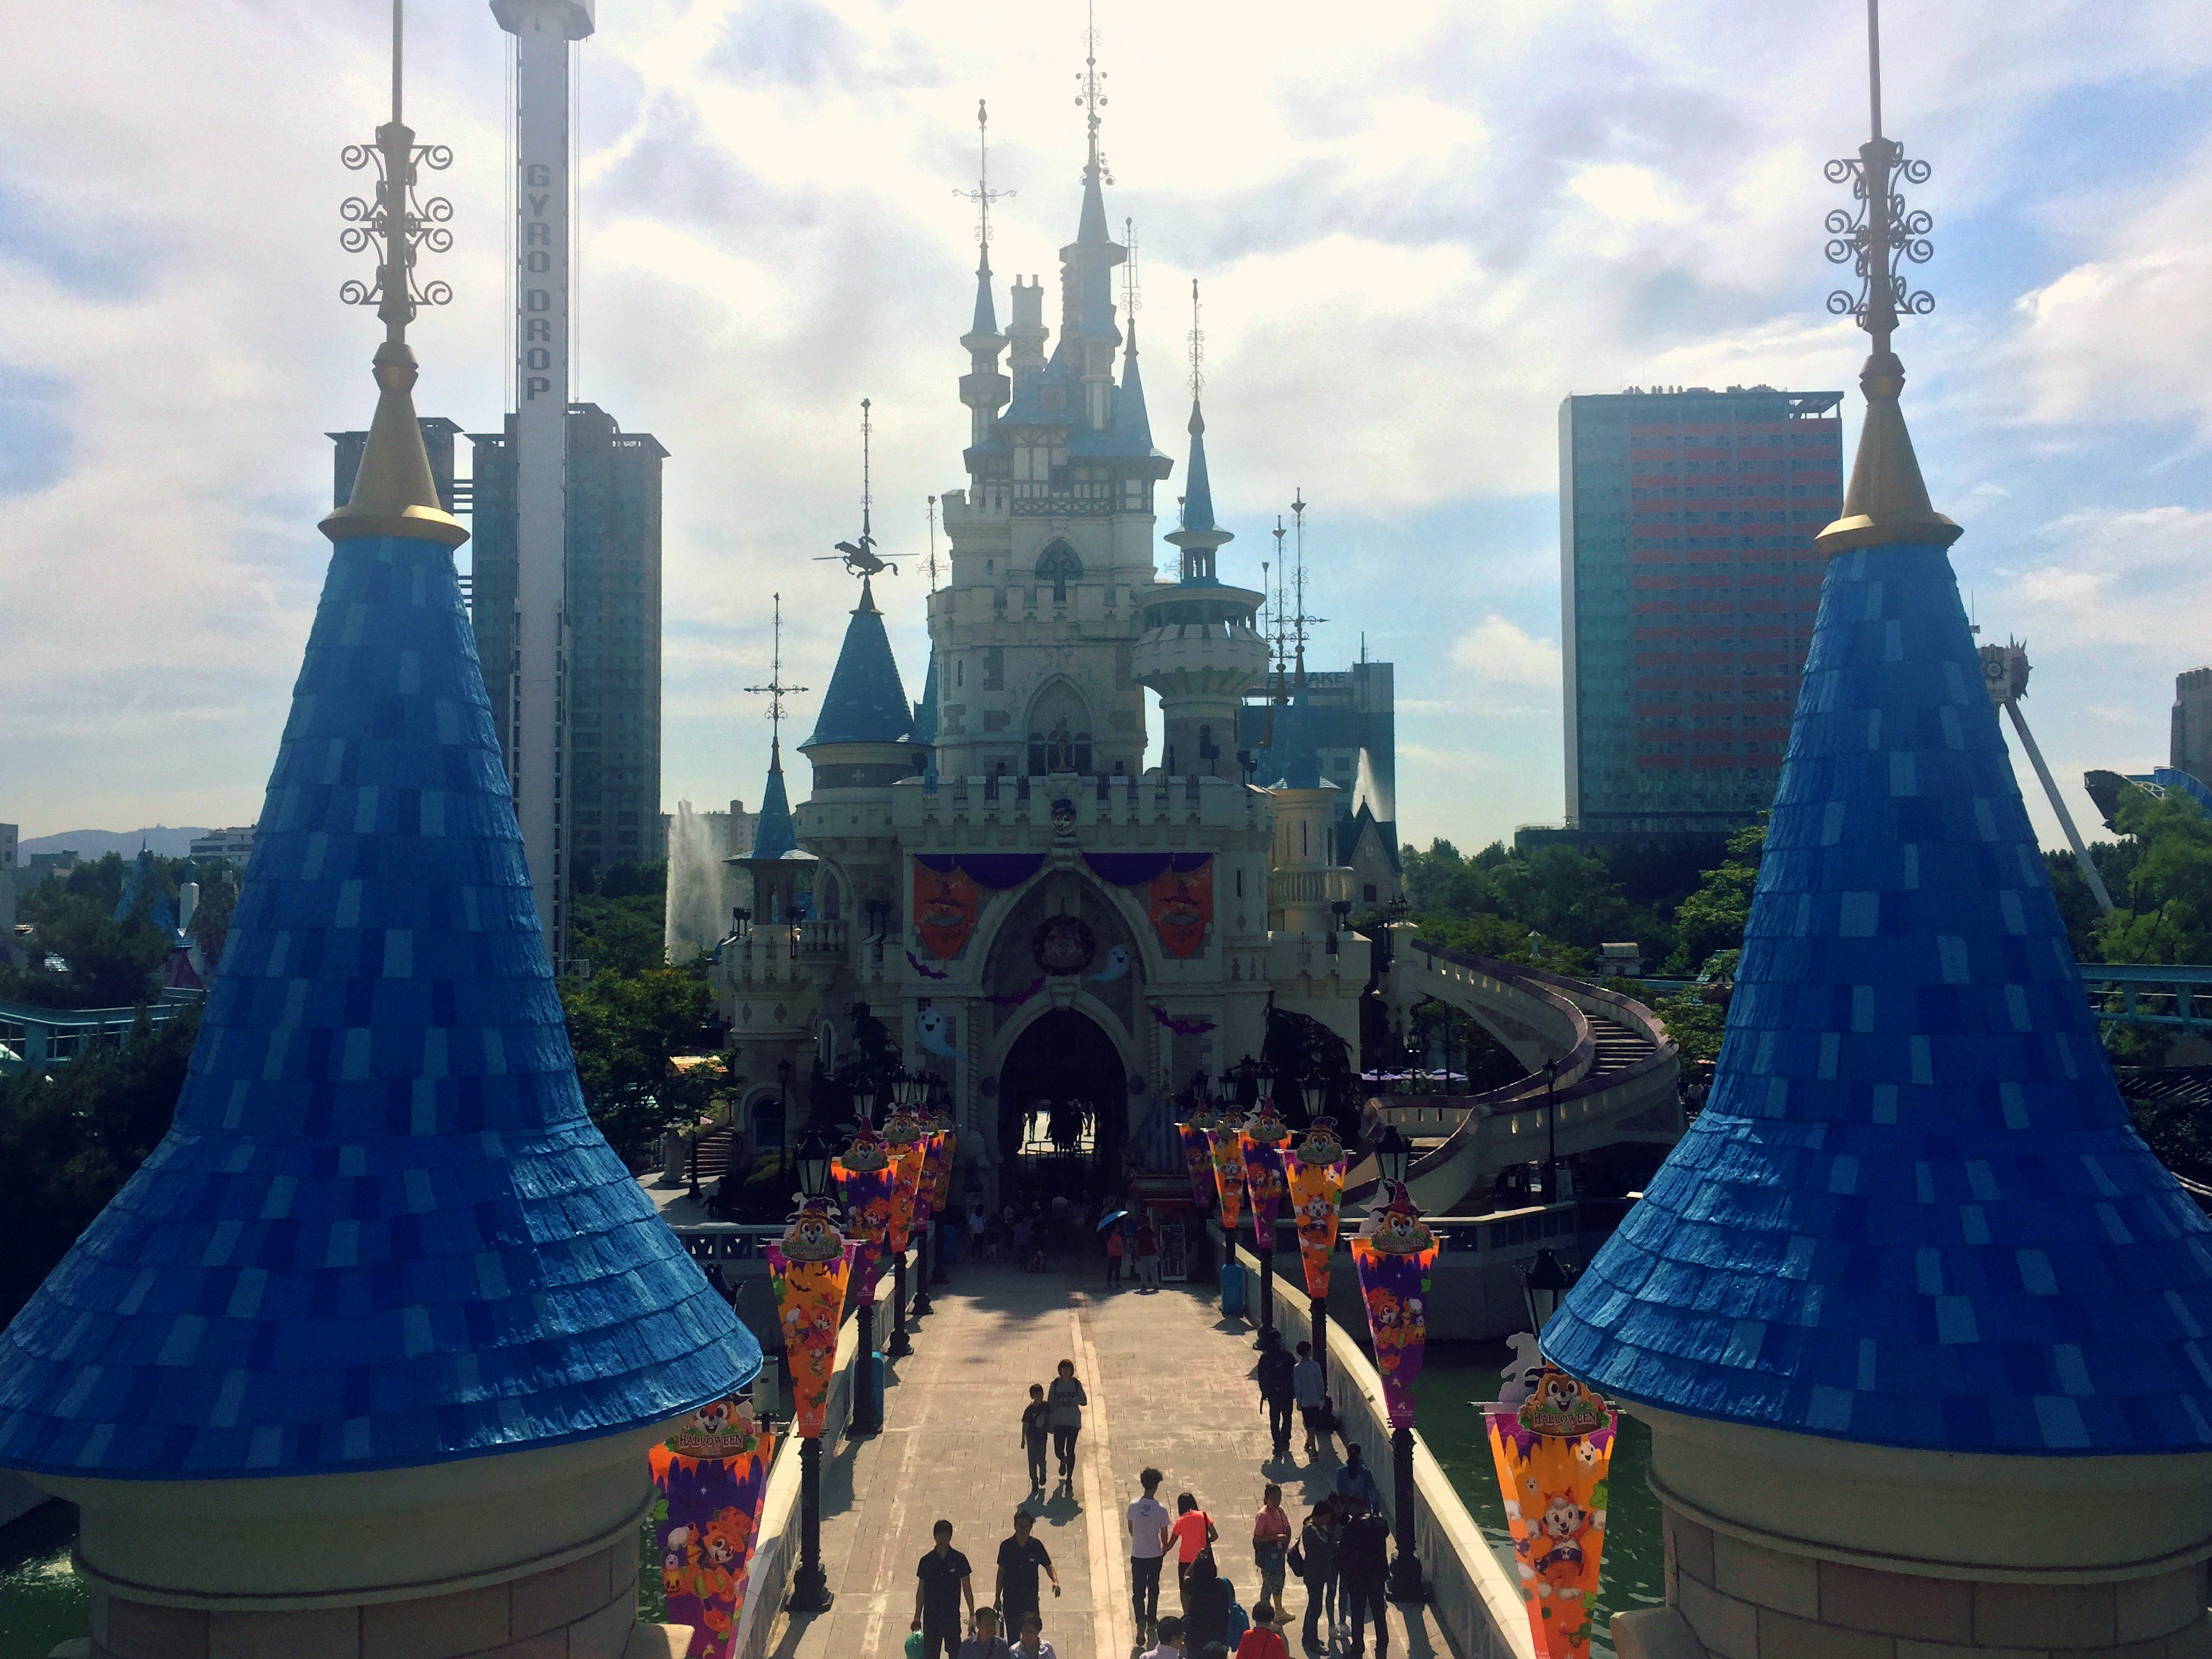 Lotte world 1